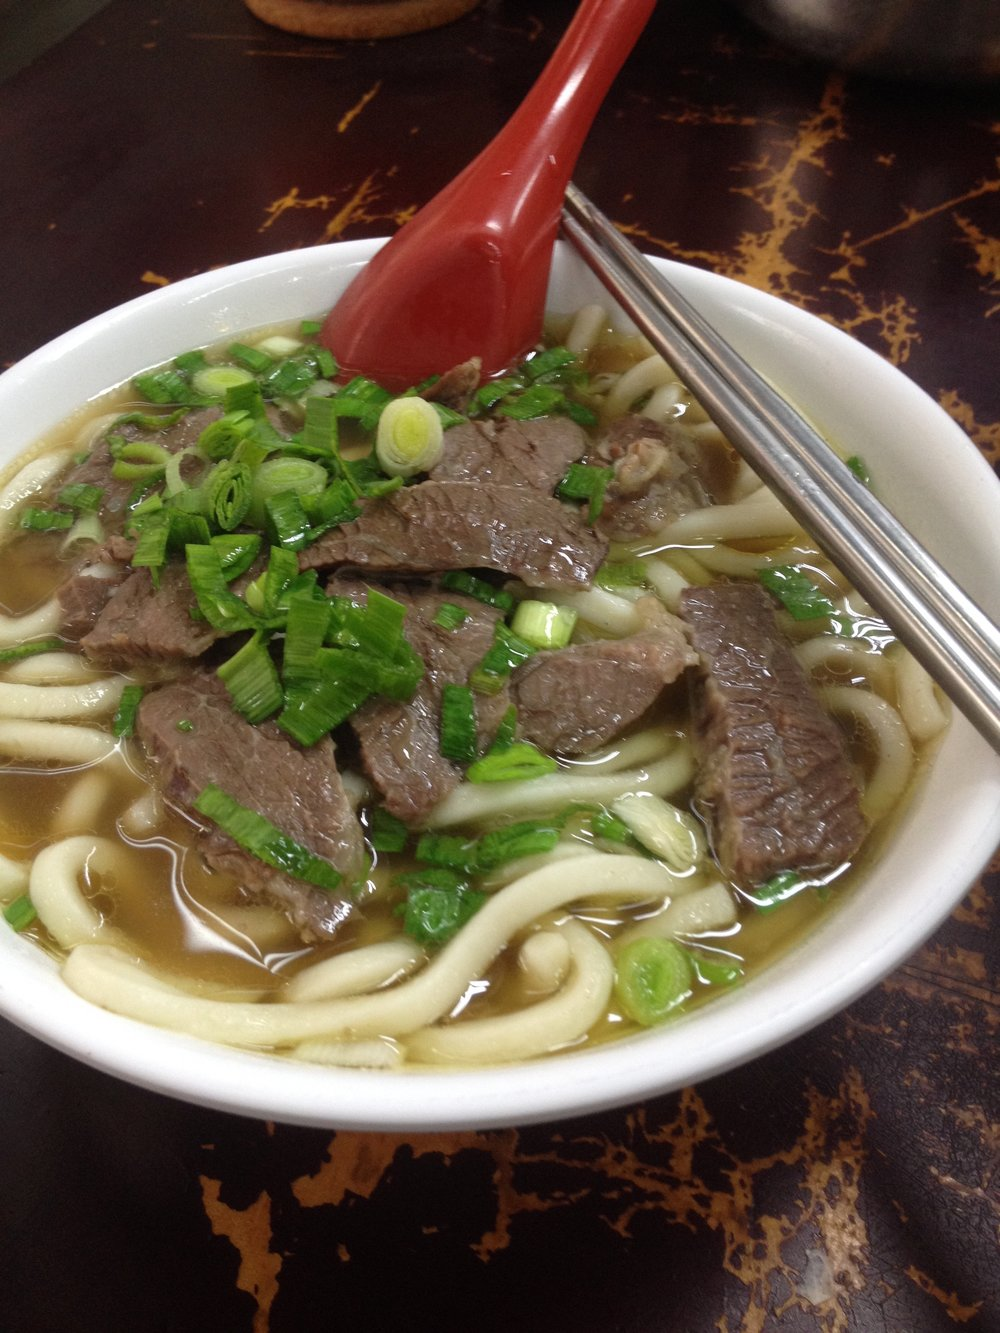 Beef noodle soup from a local shop near Taipei Main Station.